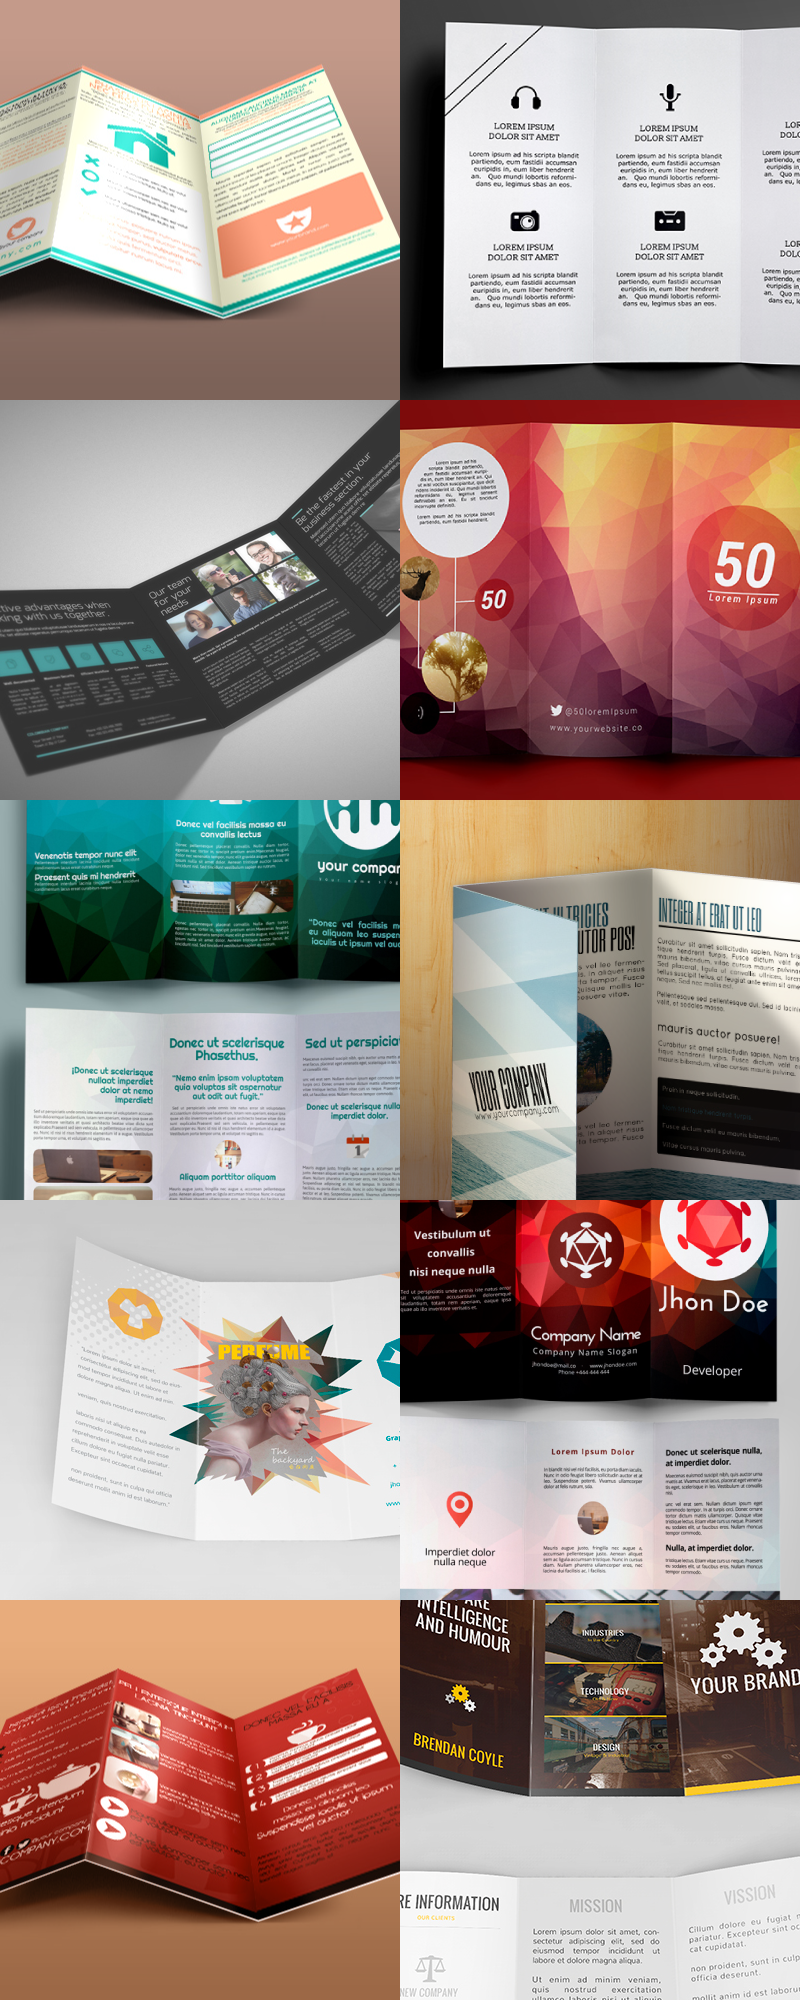 Editable Illustrator Trifold Brochure Templates ByPeople - Tri fold brochures templates